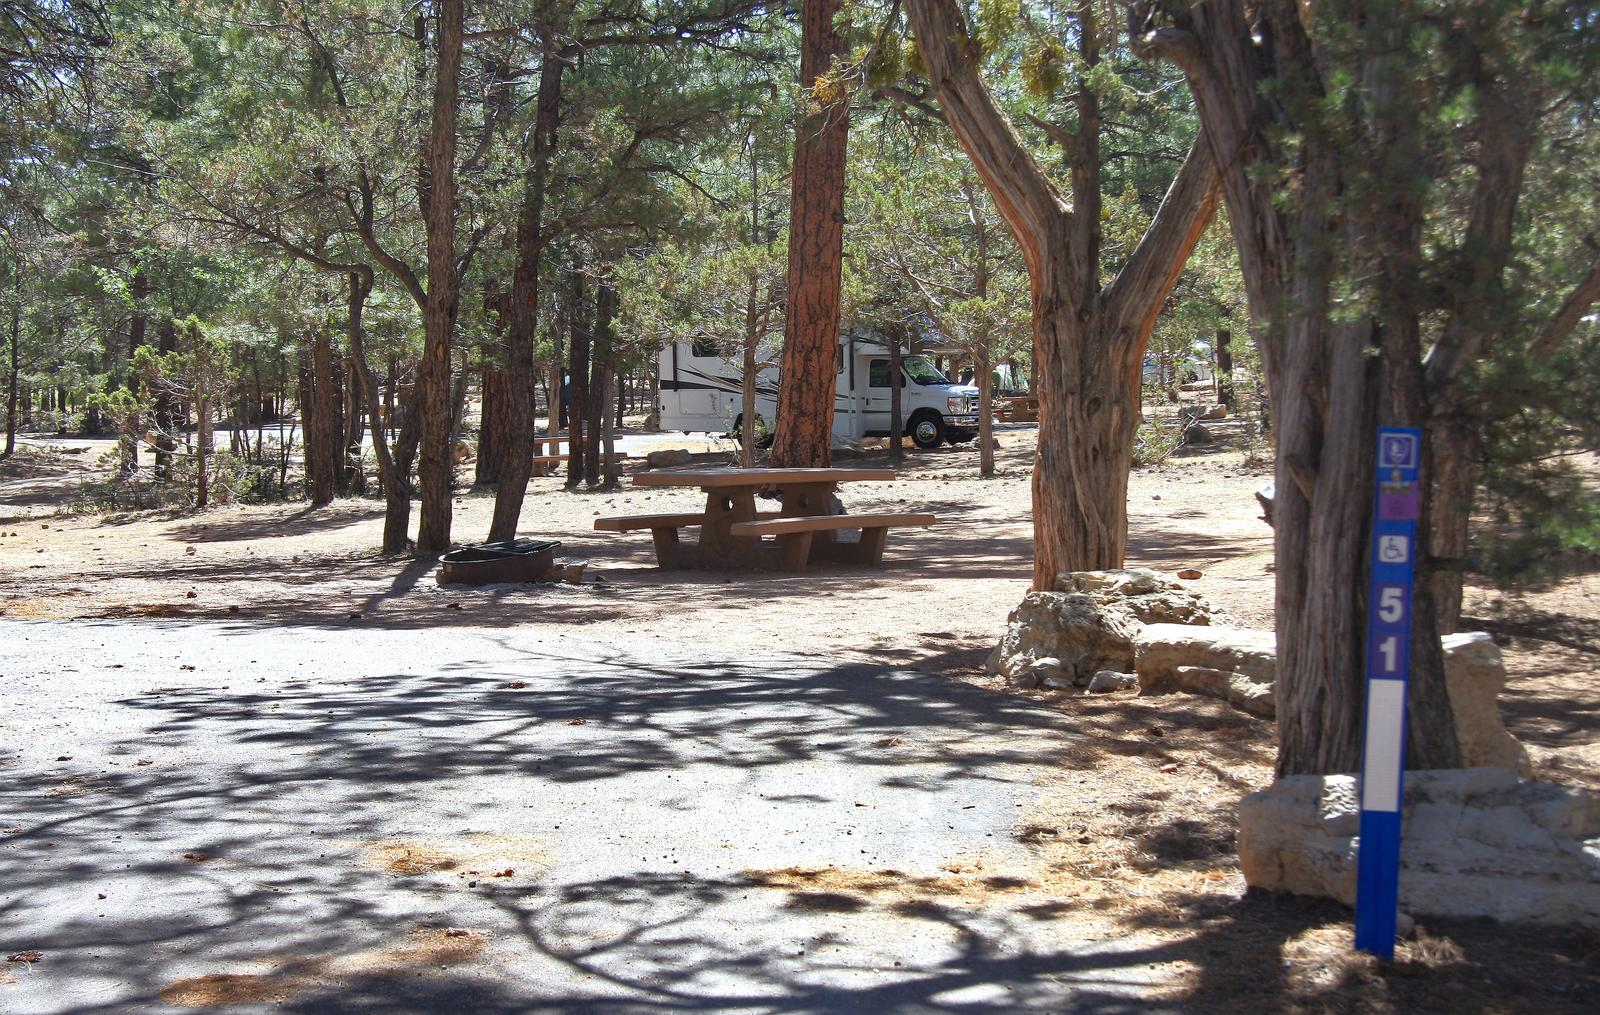 Picnic table, fire pit, and parking spot, Mather CampgroundThe picnic table, fire pit, and parking spot for Aspen Loop 51, Mather Campground